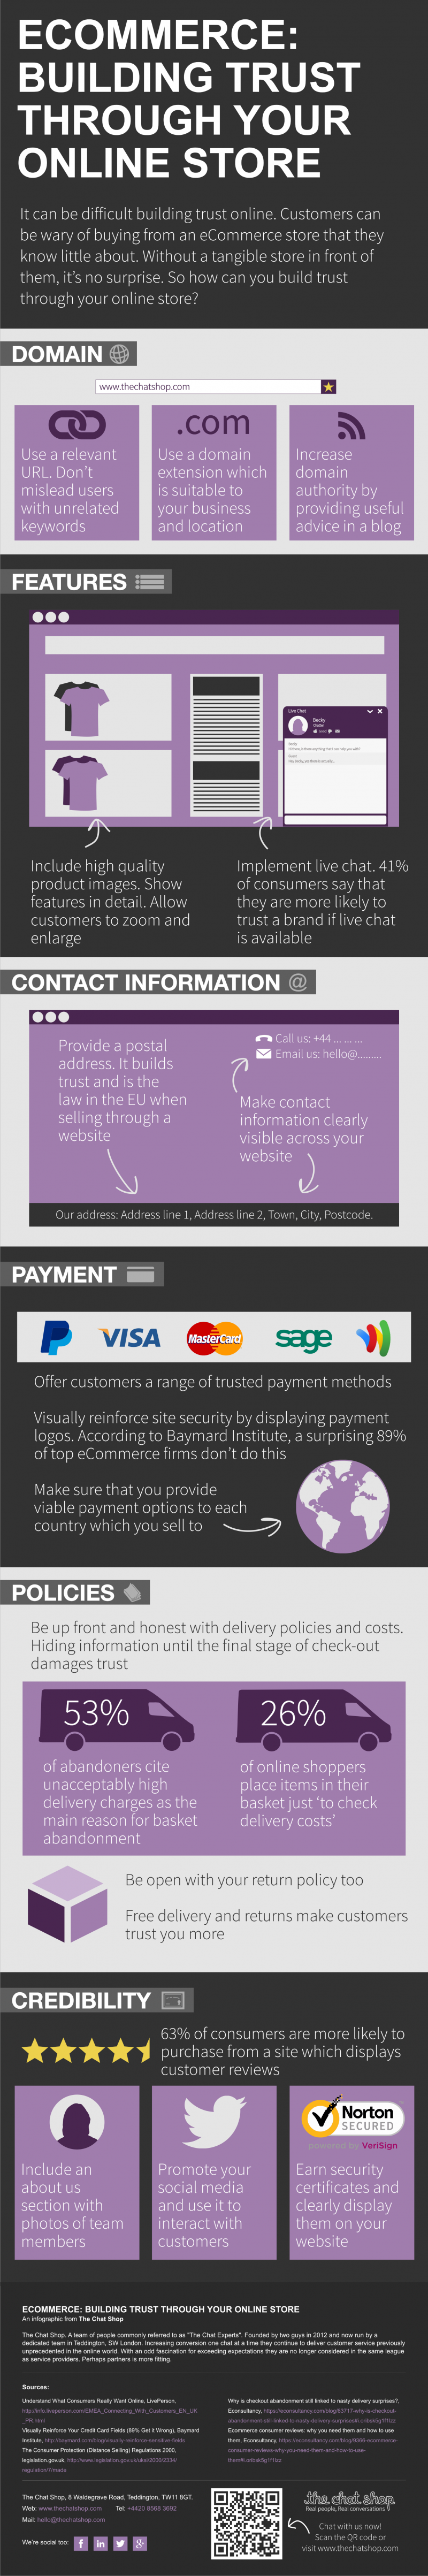 Ecommerce Building Trust Infographic